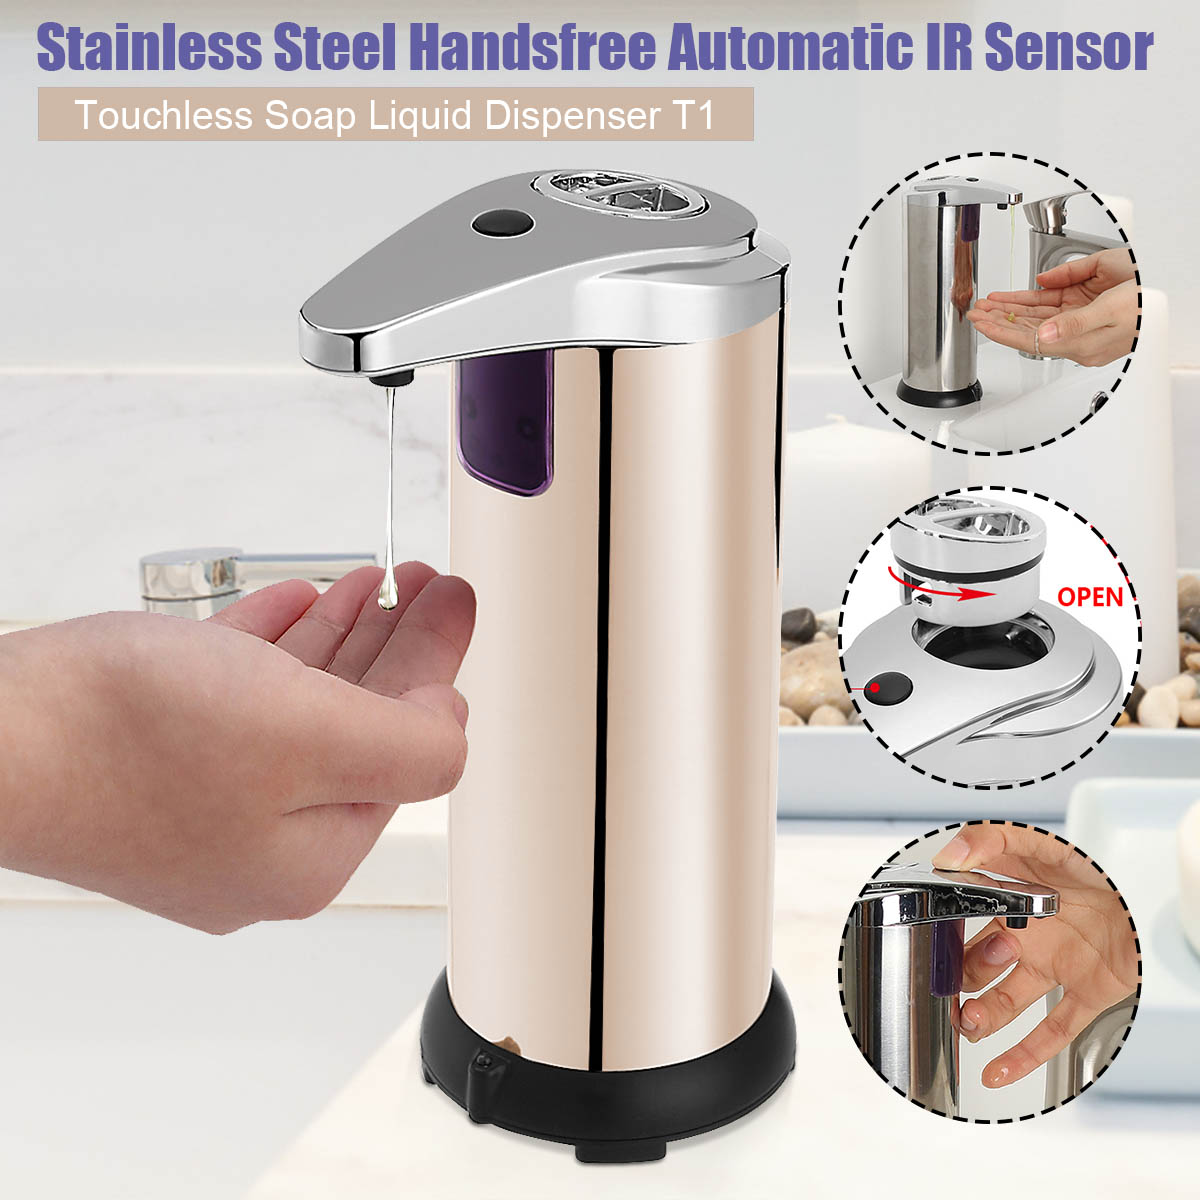 280ml Automatic Liquid Soap Dispenser Stainless Steel Sensor Soap Dispenser Pump Shower Kitchen Soap Bottle For Bathroom 280lm automatic liquid soap dispenser stainless steel sensor soap dispenser pump shower kitchen soap bottle for bath washroom